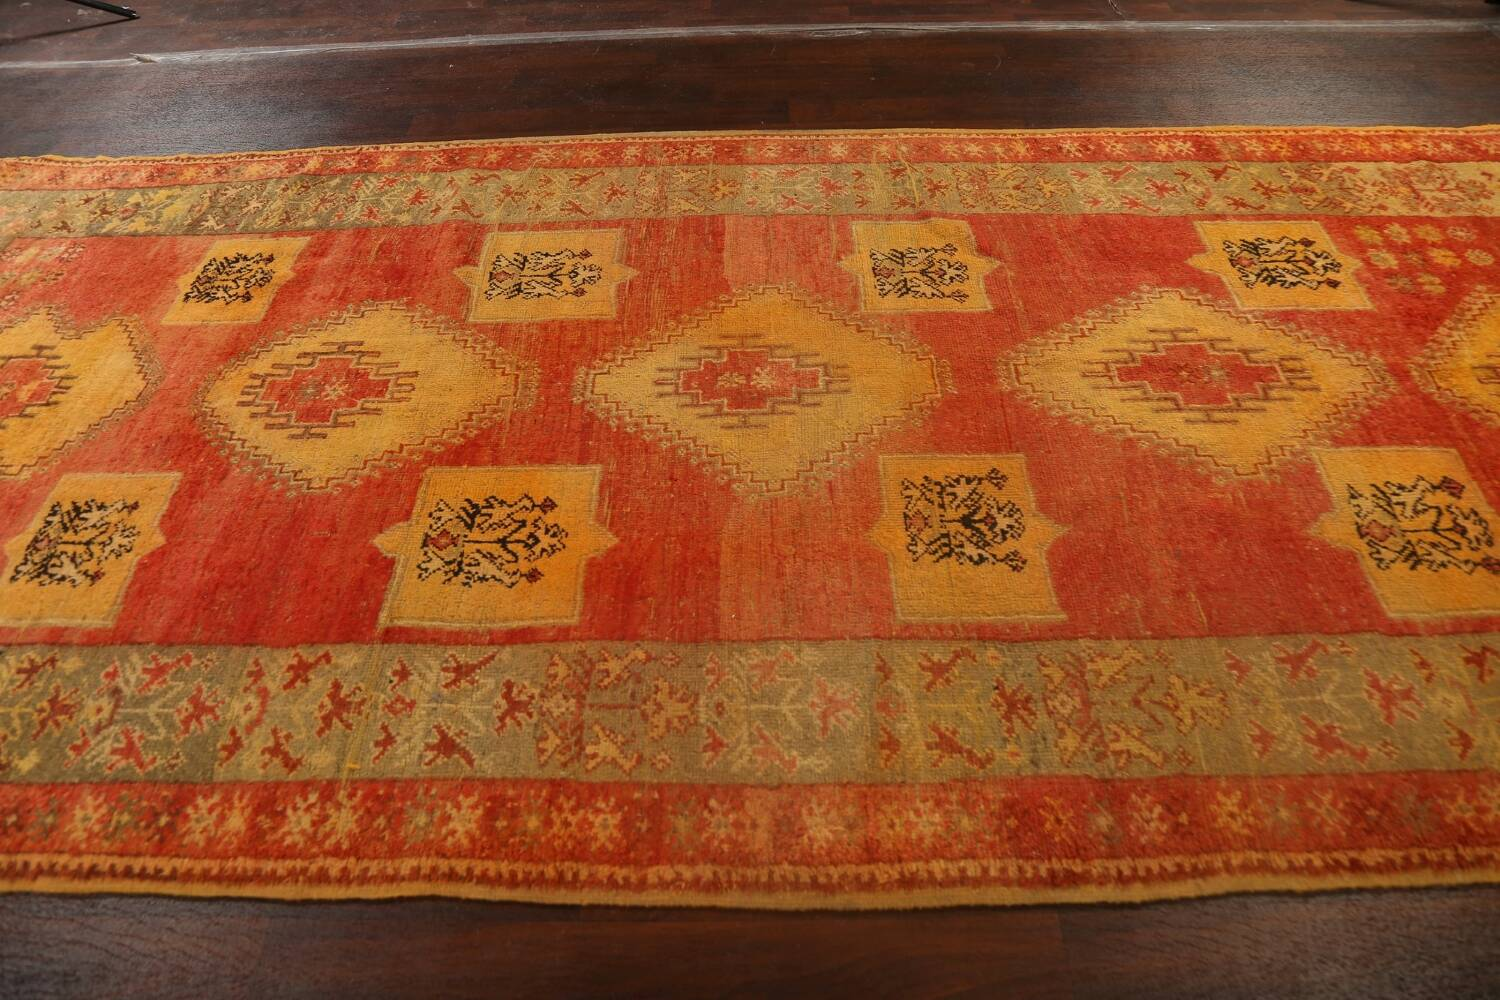 Antique Tribal Moroccan Oriental Runner Rug 6x14 image 16